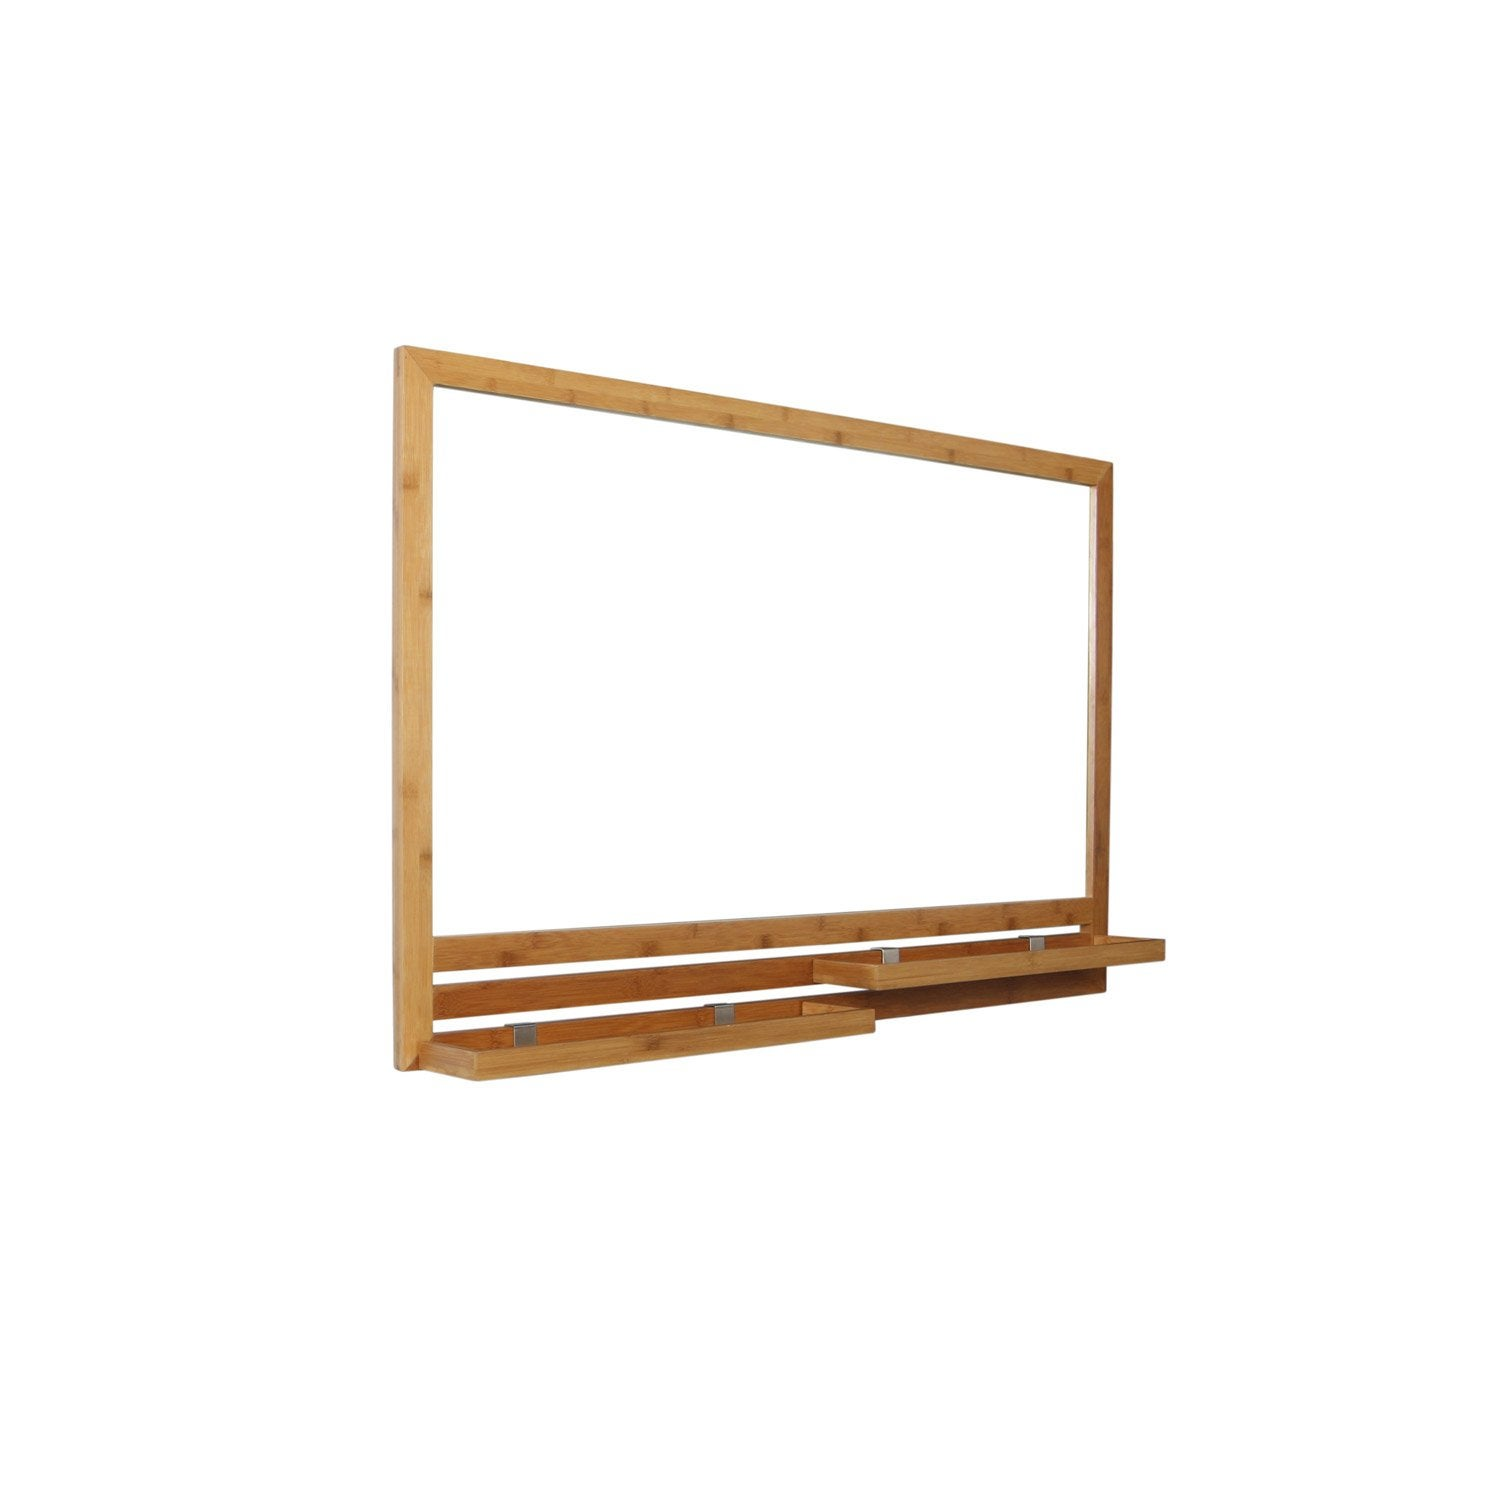 Miroir avec tablette bambou l 93 0 cm natural leroy merlin for Miroir tablette